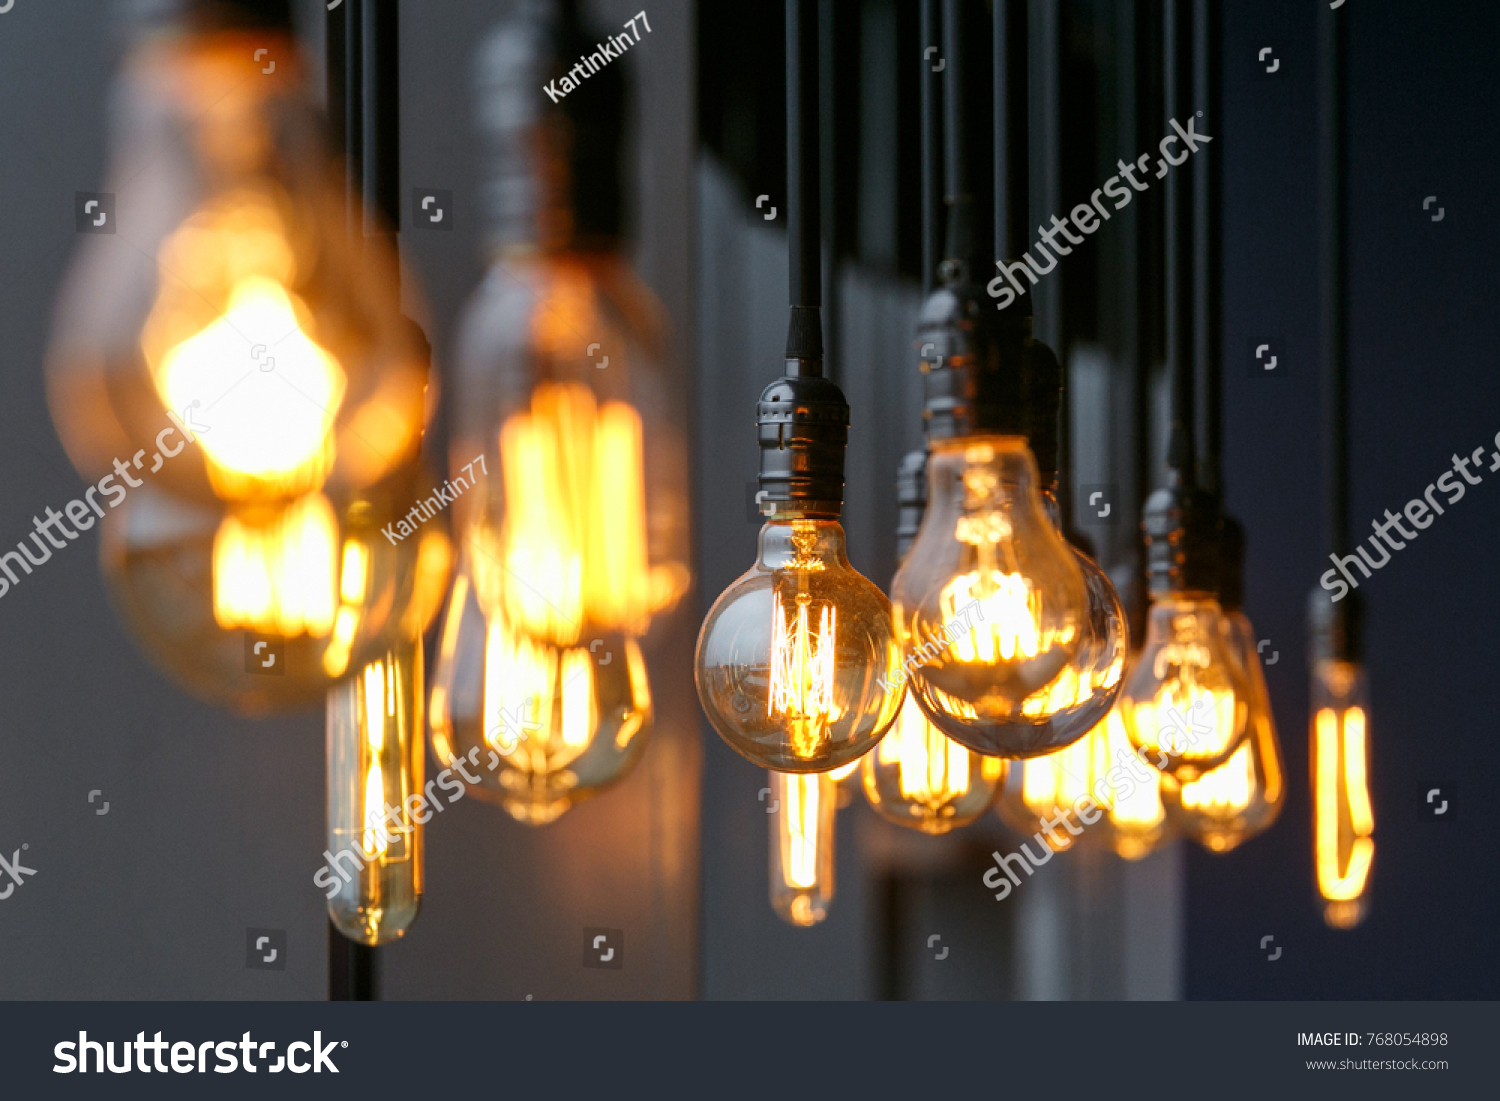 Vintage Tungsten Filament Multiple Lamps Different Stock Photo Edit Lighting Fixture Using On Wiring Ceiling Light Of Size And Style Hanging From The A